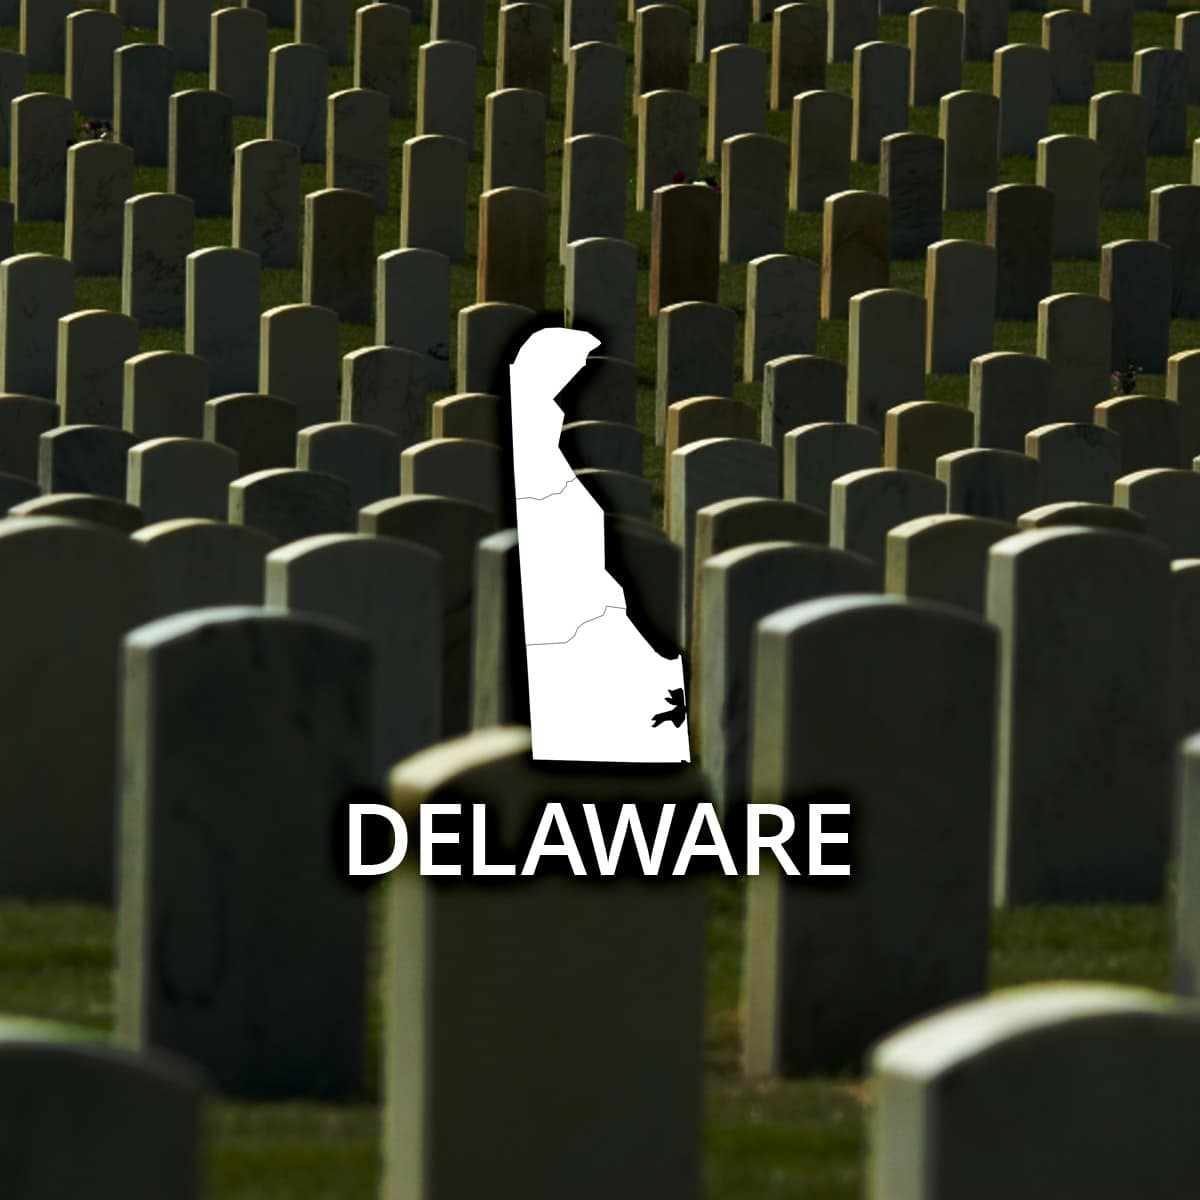 Where to Obtain a Delaware Death Certificate